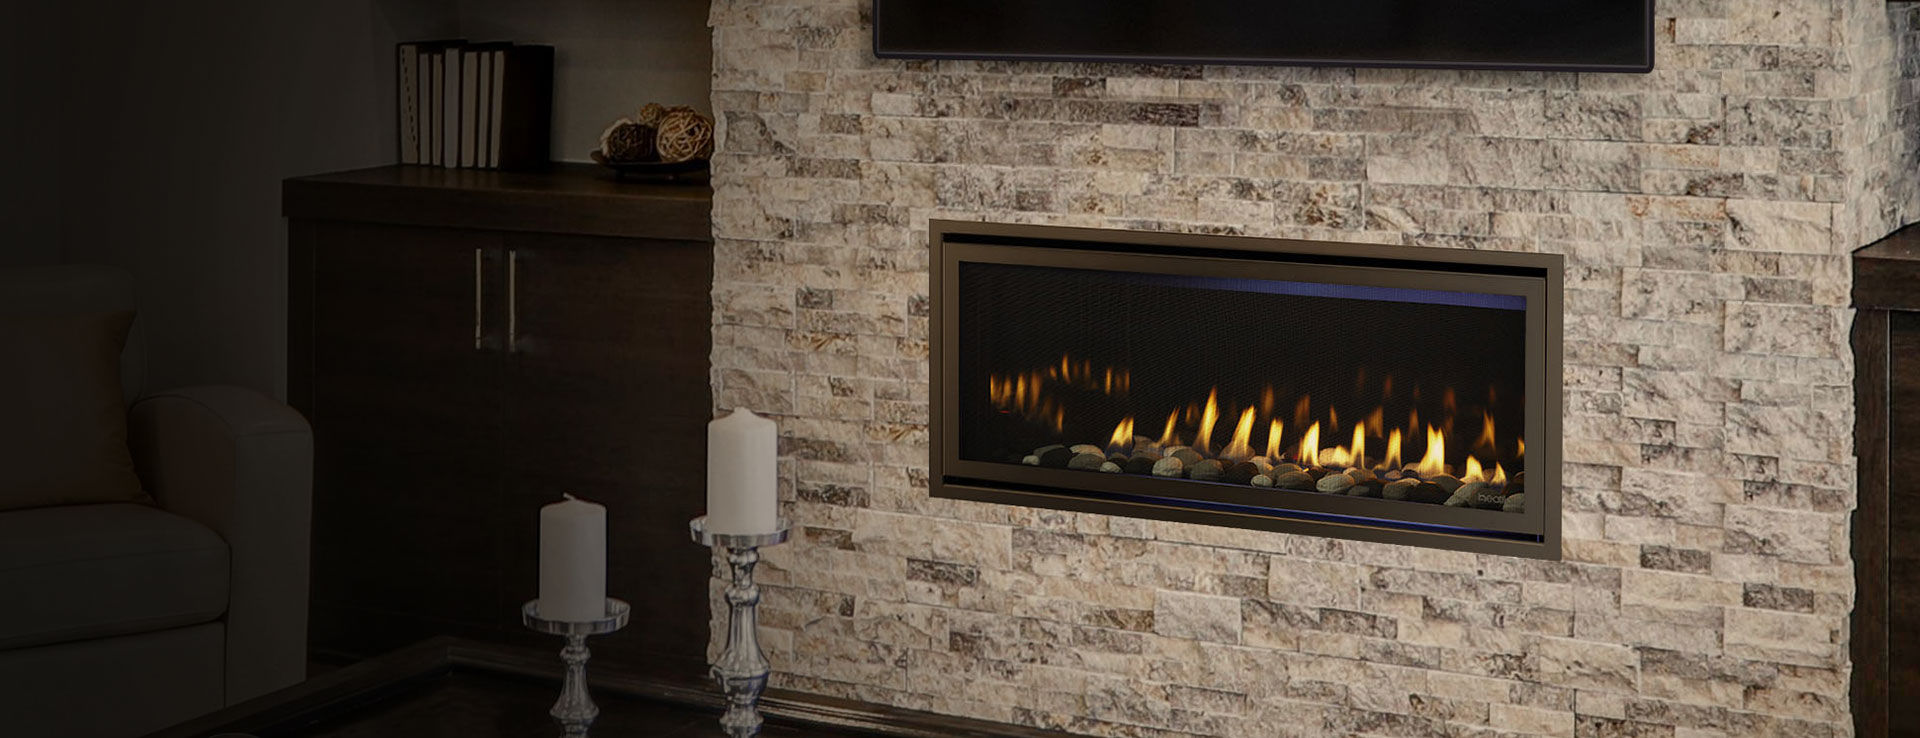 Gas Fireplace Contemporary Closed Hearth Built In